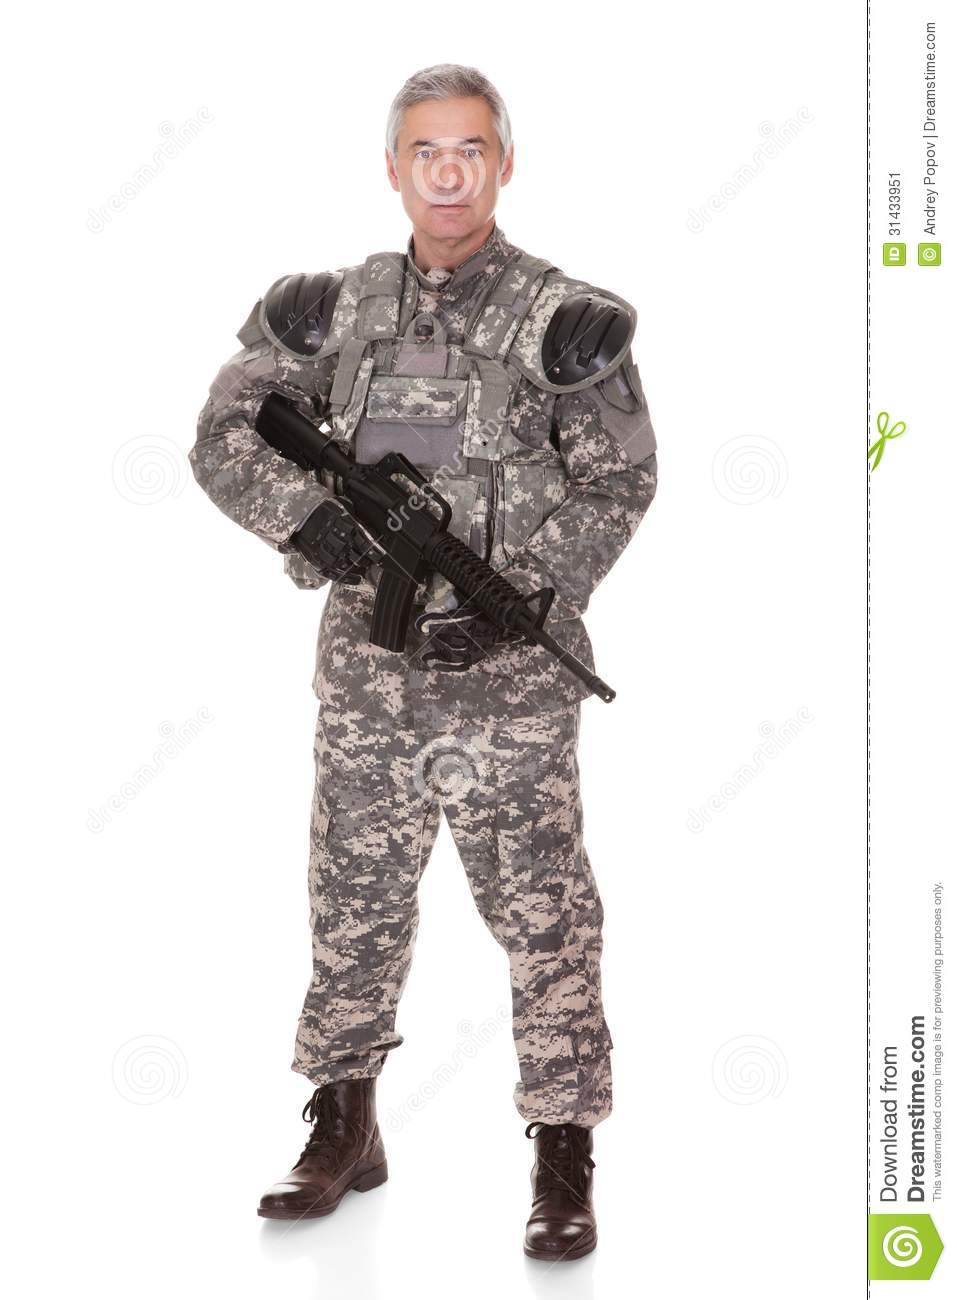 Stock Image Tin Phone  munication Image7066901 additionally Thailands Economy Is Struggling But Will Not Suffer Another 1997 Asian Financial Crisis further Royalty Free Stock Photos Society Togetherness Diversity Concept Image38276258 moreover Ferrari World Abu Dhabi likewise Stock Image Mature Soldier Holding Rifle Isolated White Background Image31433951. on audio production group